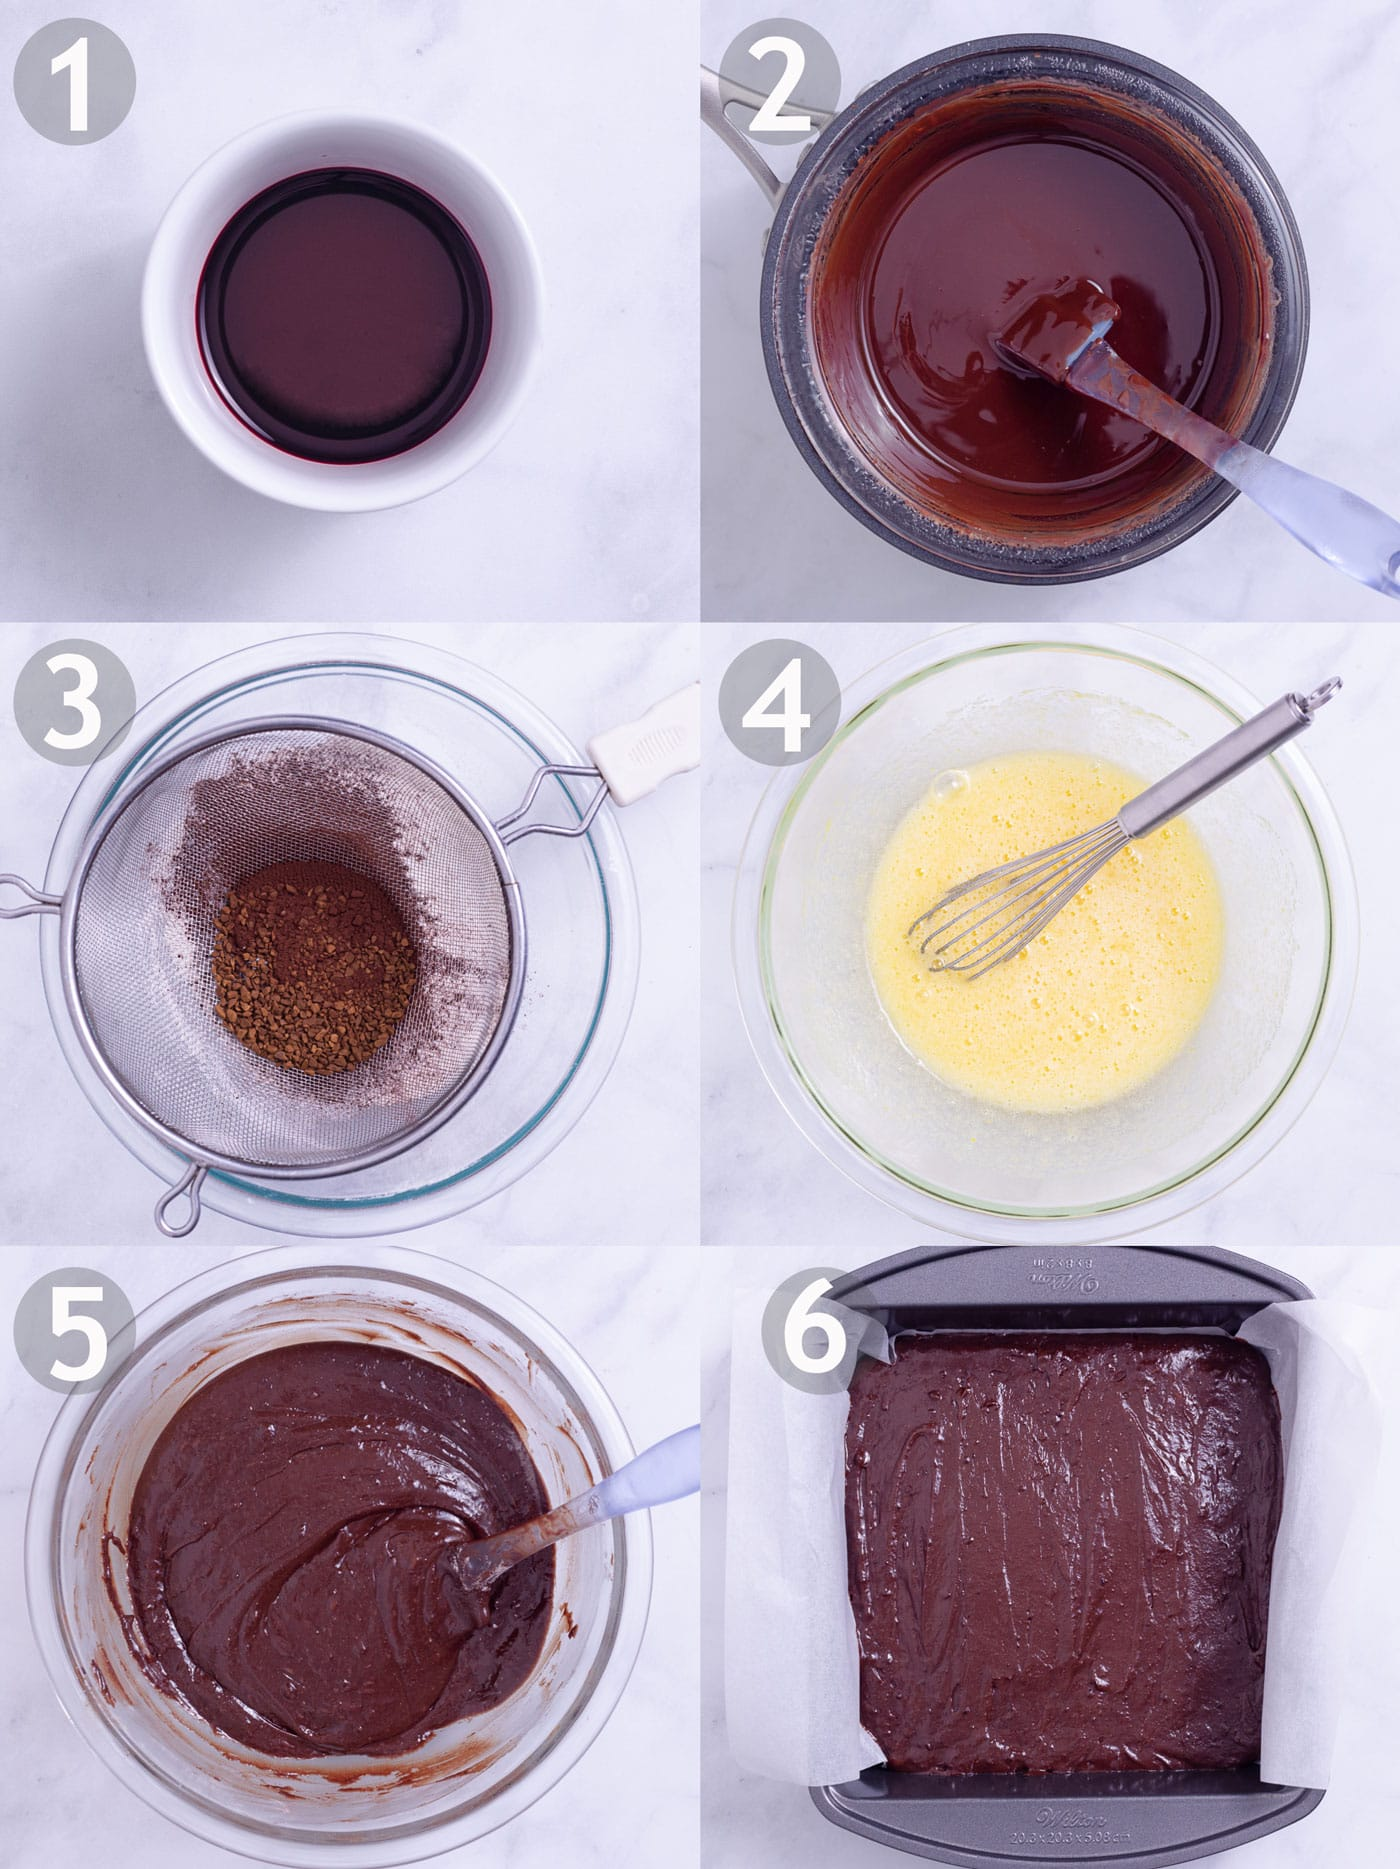 Step by step photos of making brownies with red wine: reduce wine, melt chocolate with butter, mix dry ingredients, mix wet ingredients, combine everything and bake.